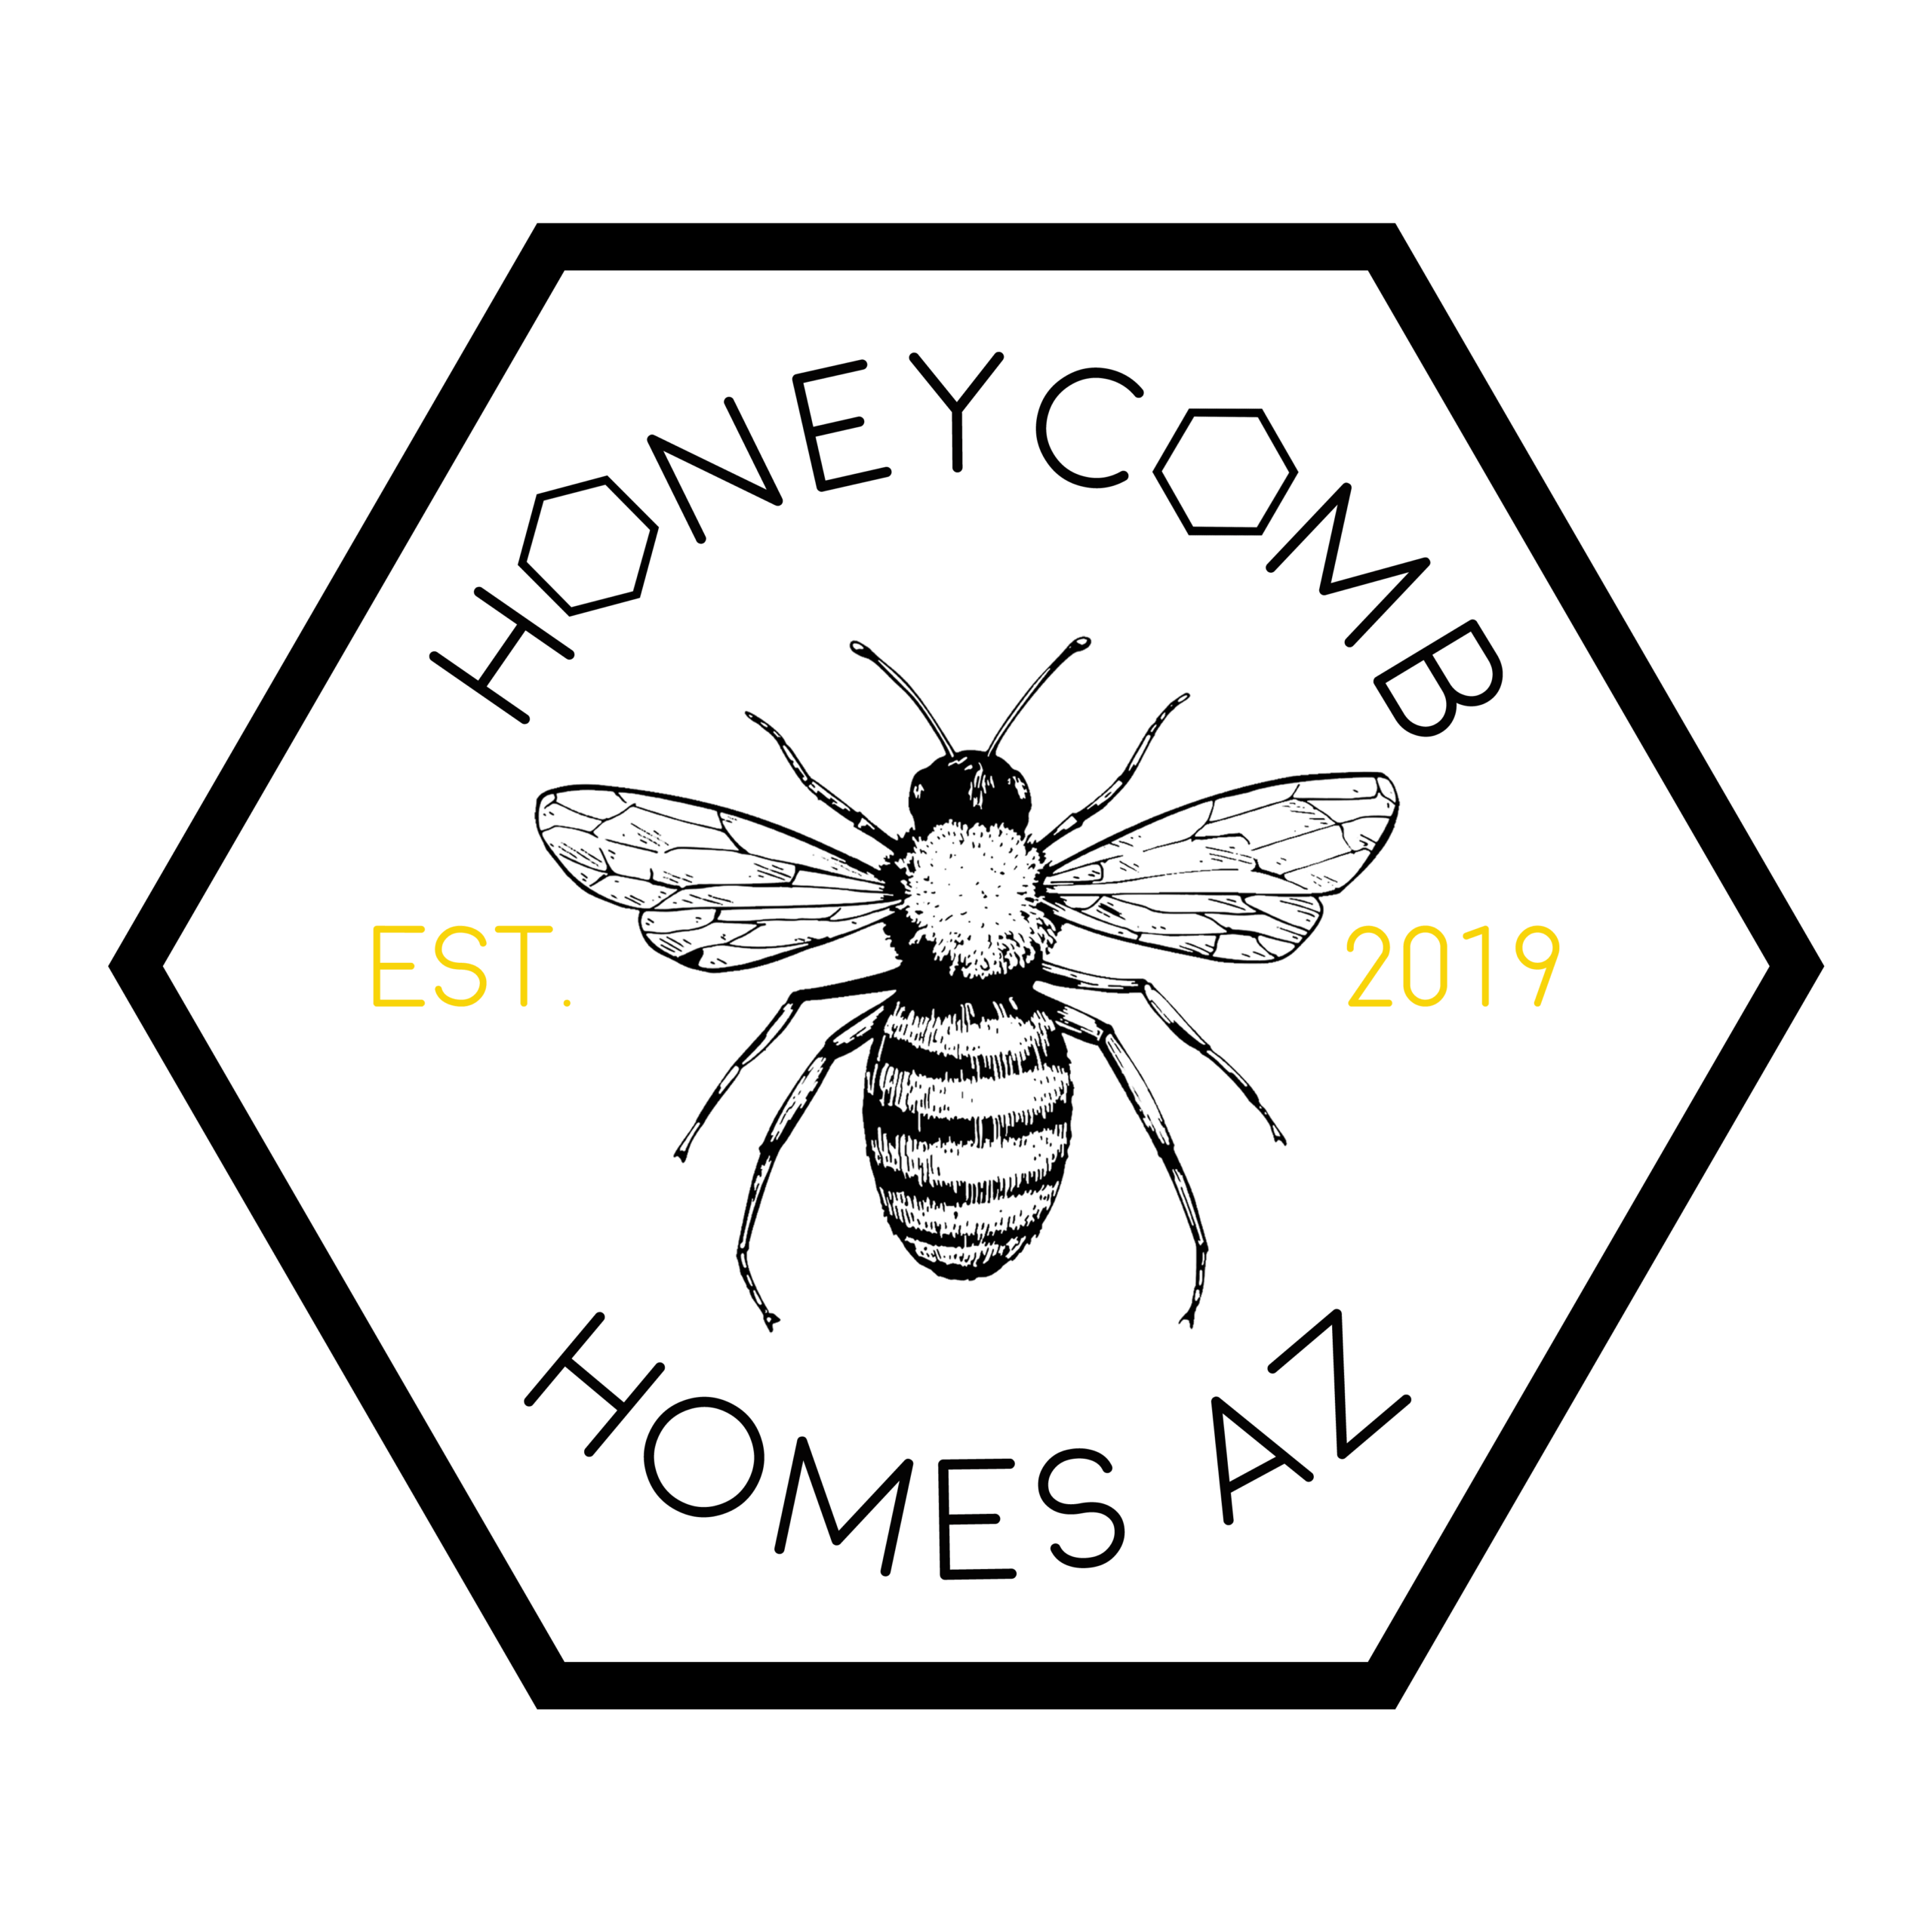 honeycomb homes logo in white